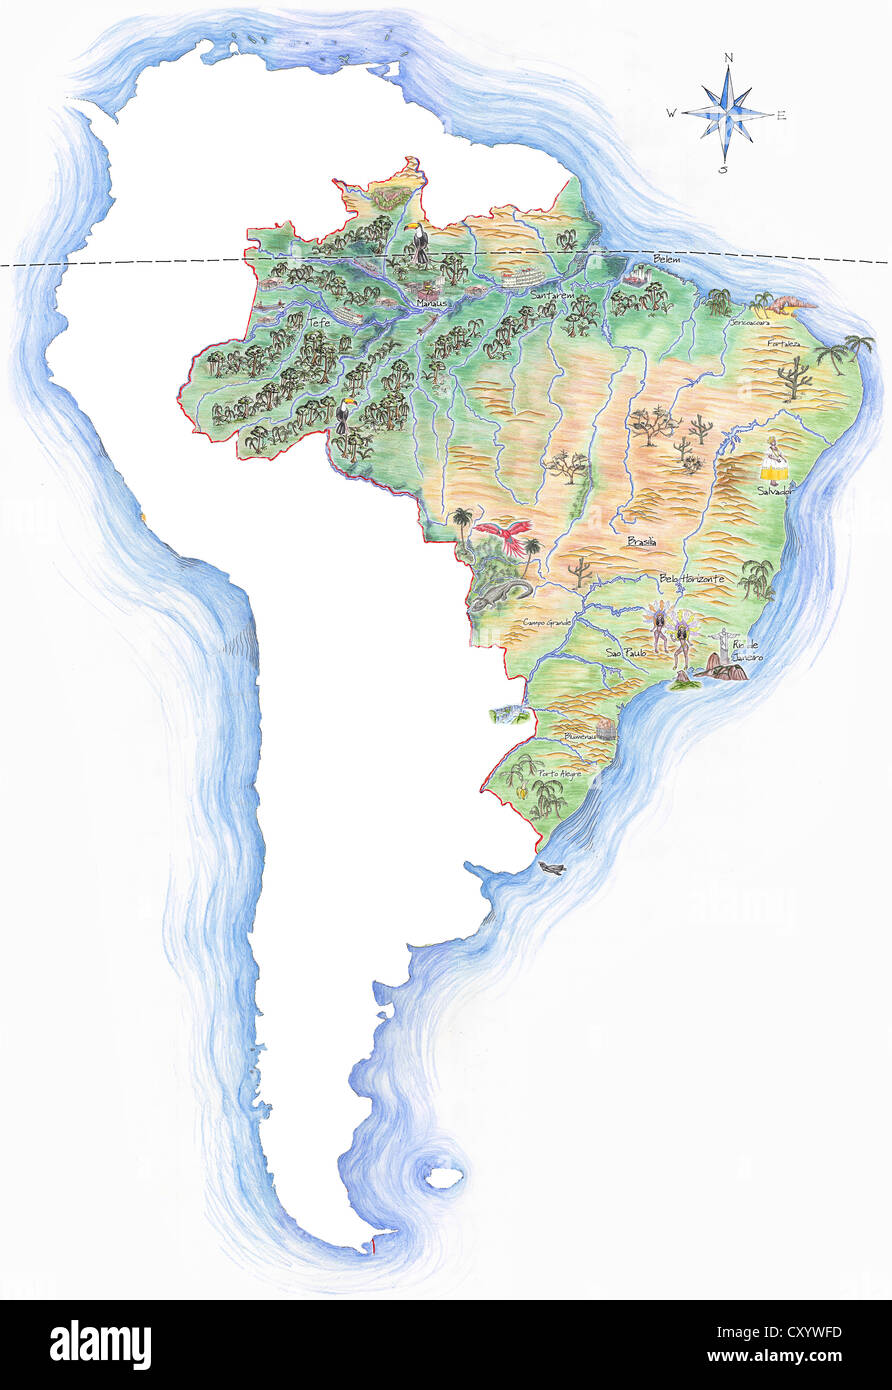 Highly detailed hand drawn map of brazil within the outline of highly detailed hand drawn map of brazil within the outline of south america with a compass rose and the equator gumiabroncs Image collections